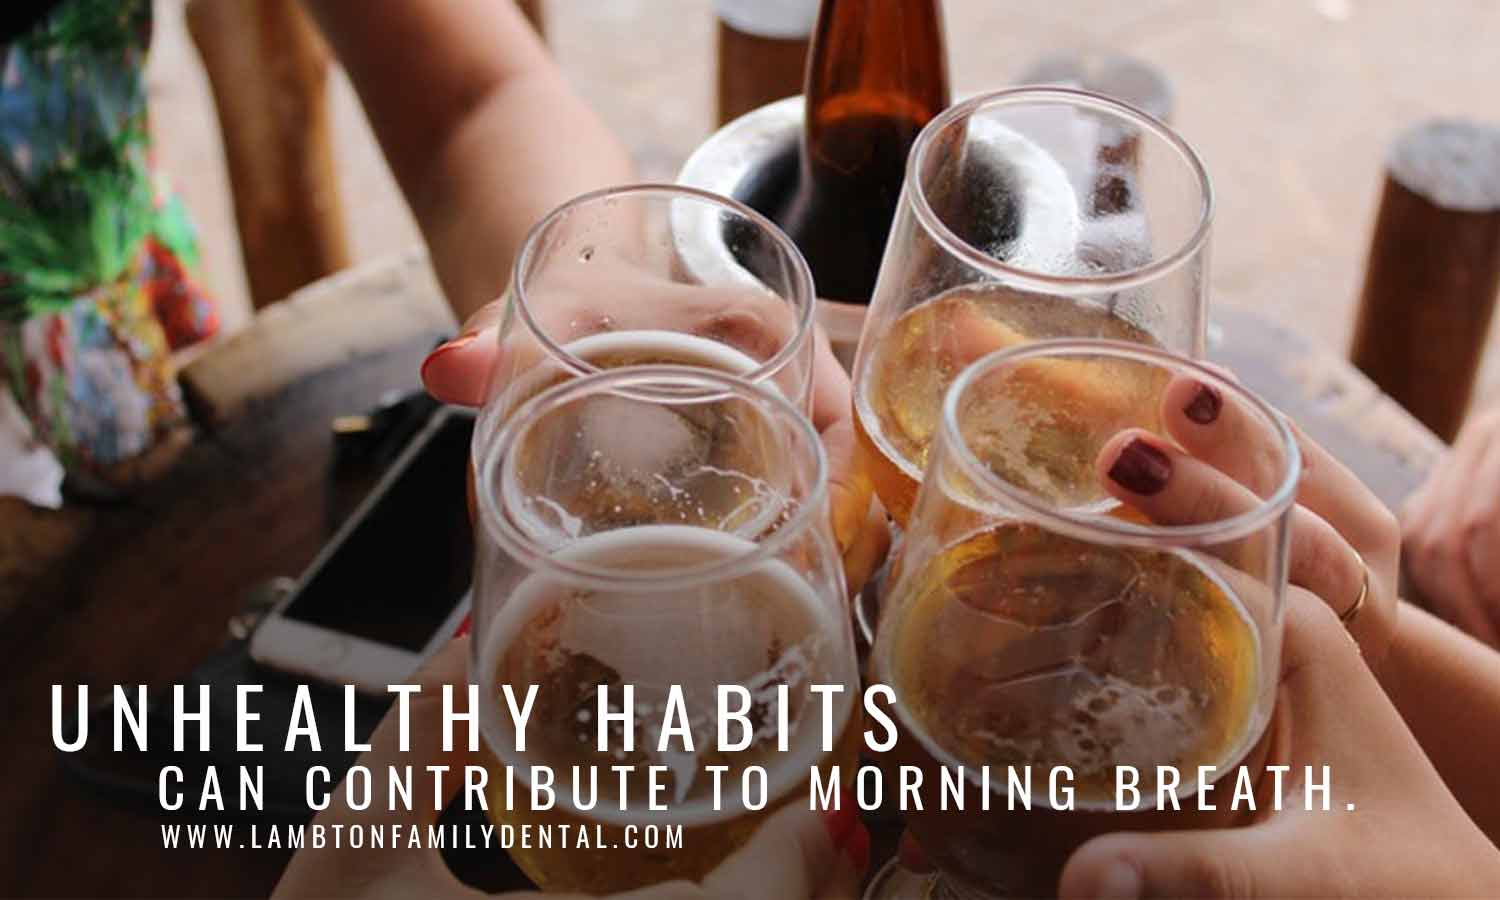 Unhealthy habits can contribute to morning breath